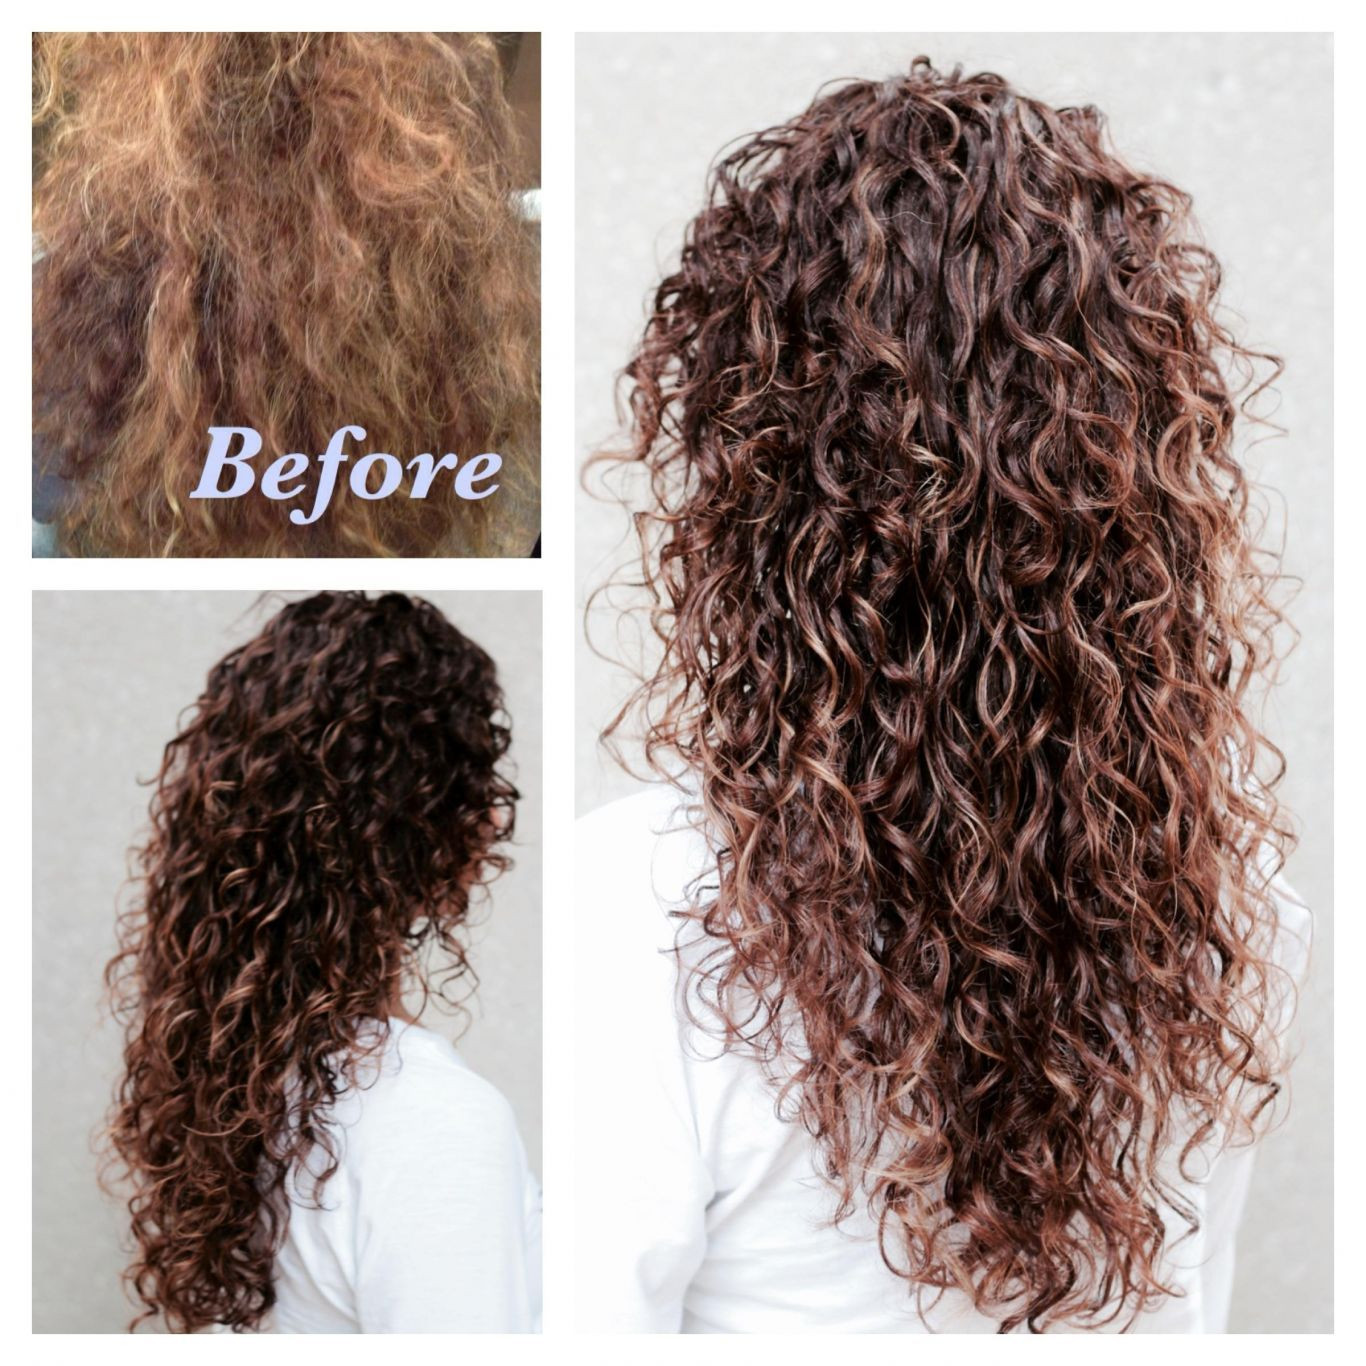 Reformation Curl Before Top After Bottom Permed Hairstyles Short Curly Weave Hairstyles Change Hair